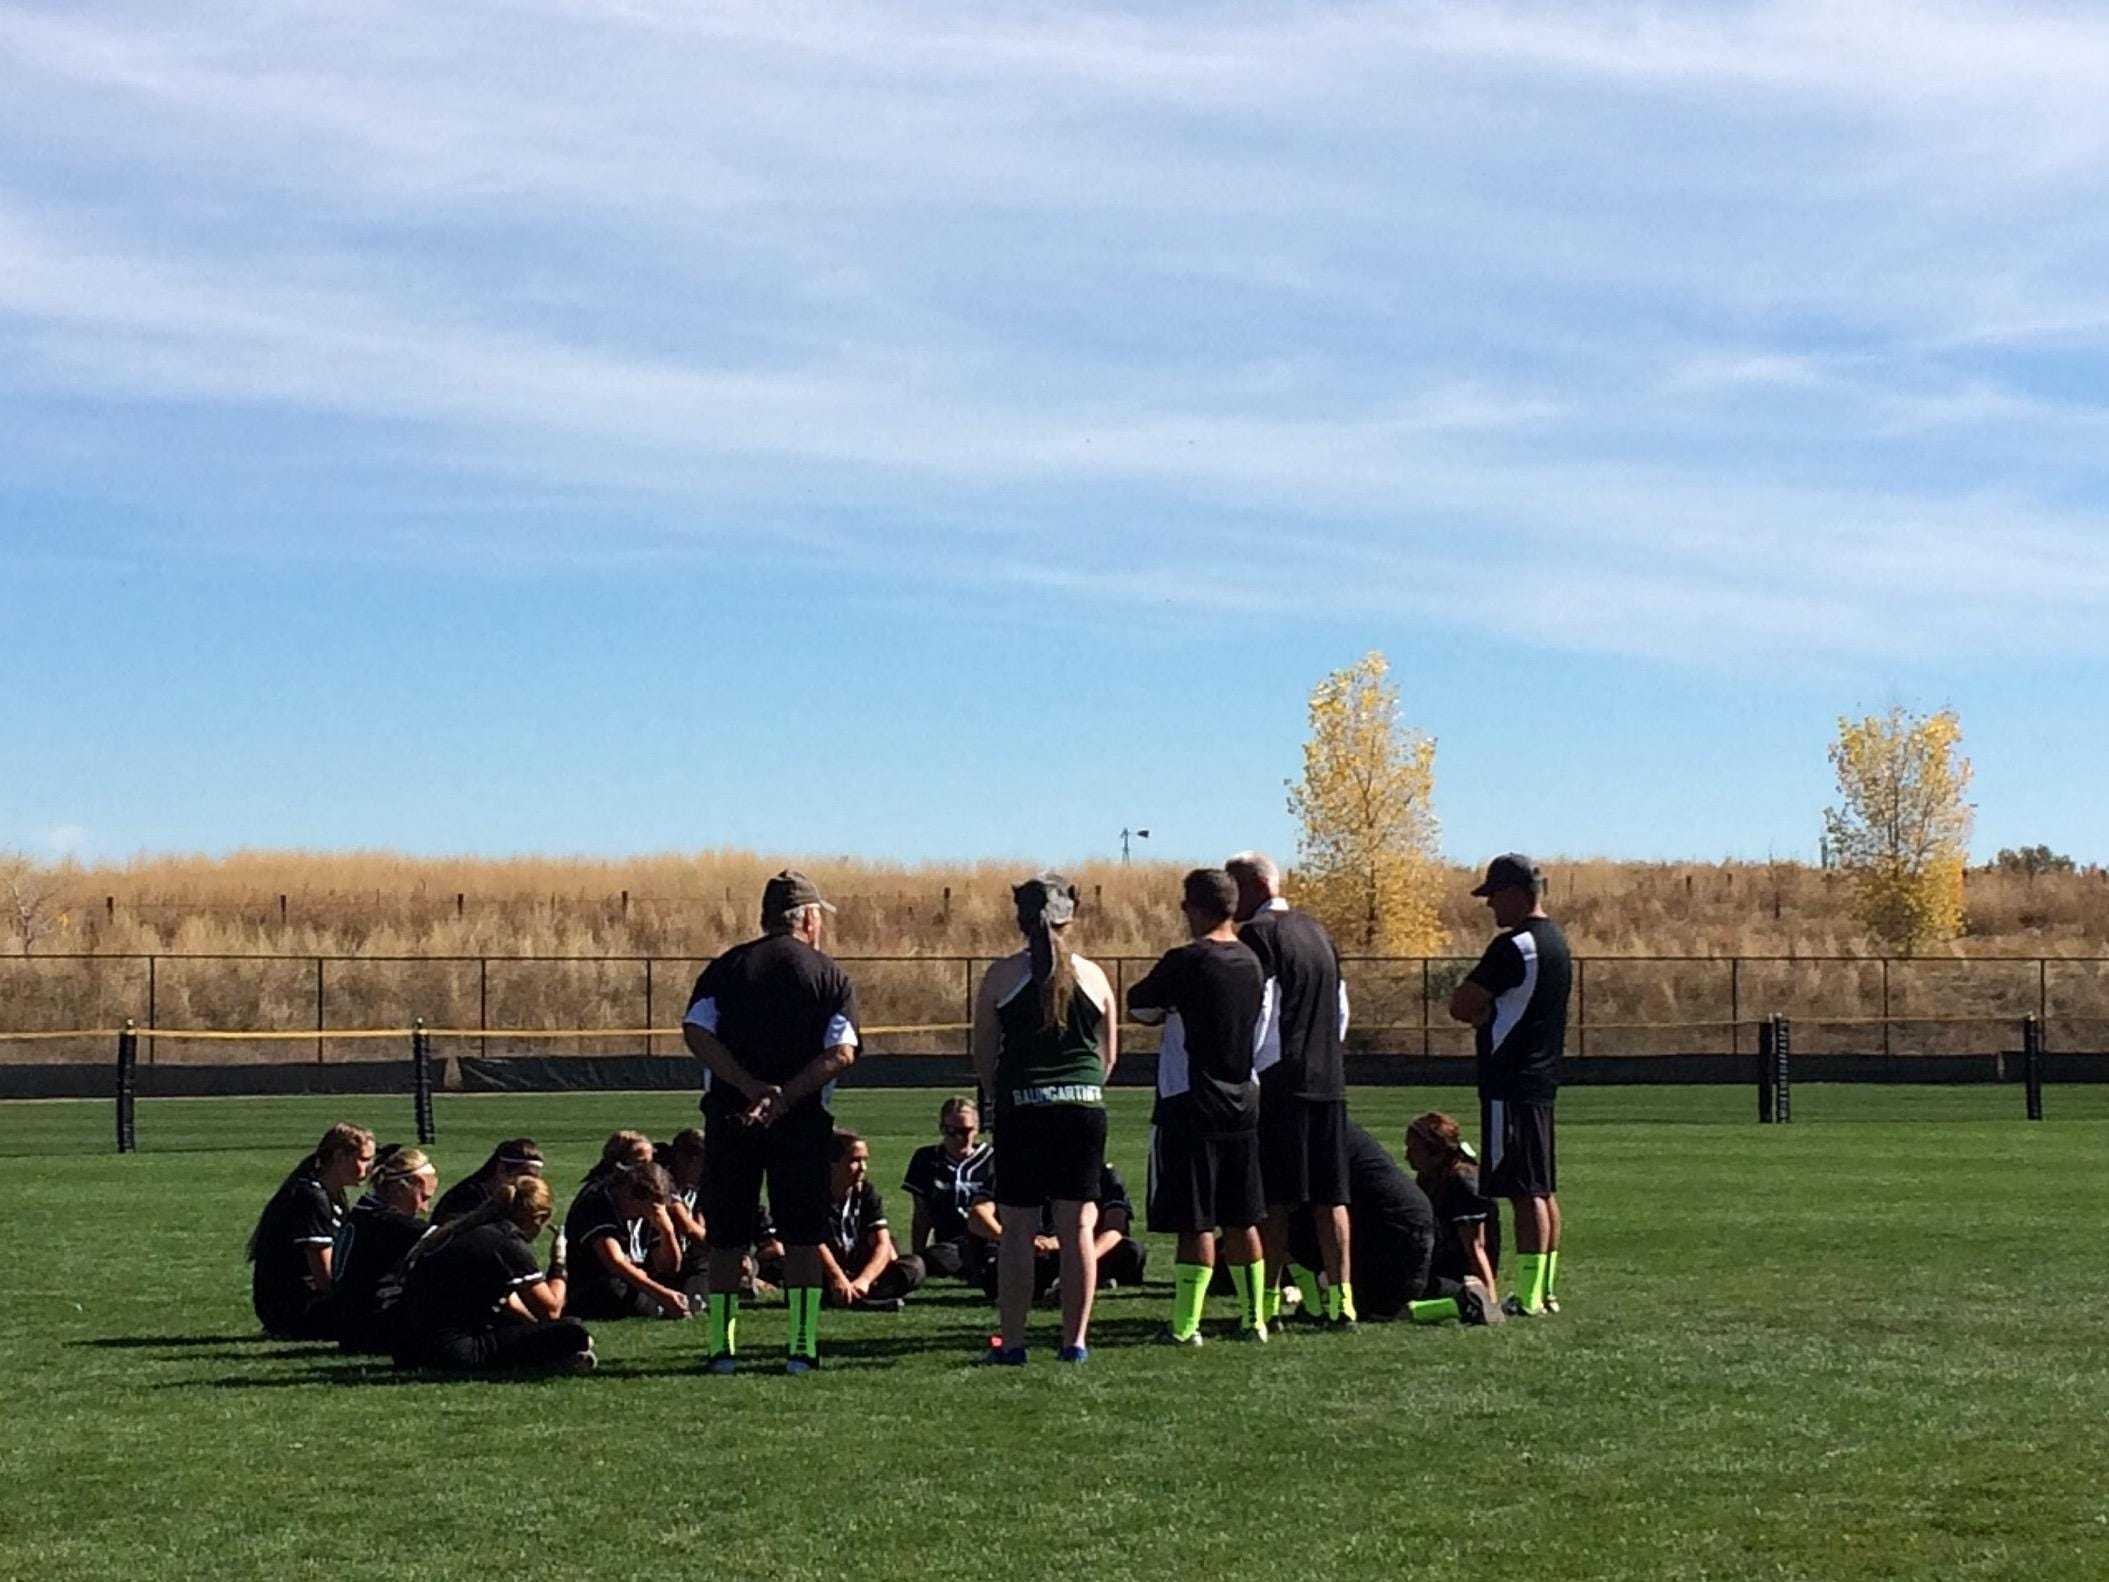 The Fossil Ridge softball team talks after a 13-11 loss to Pomona in the state semifinals.